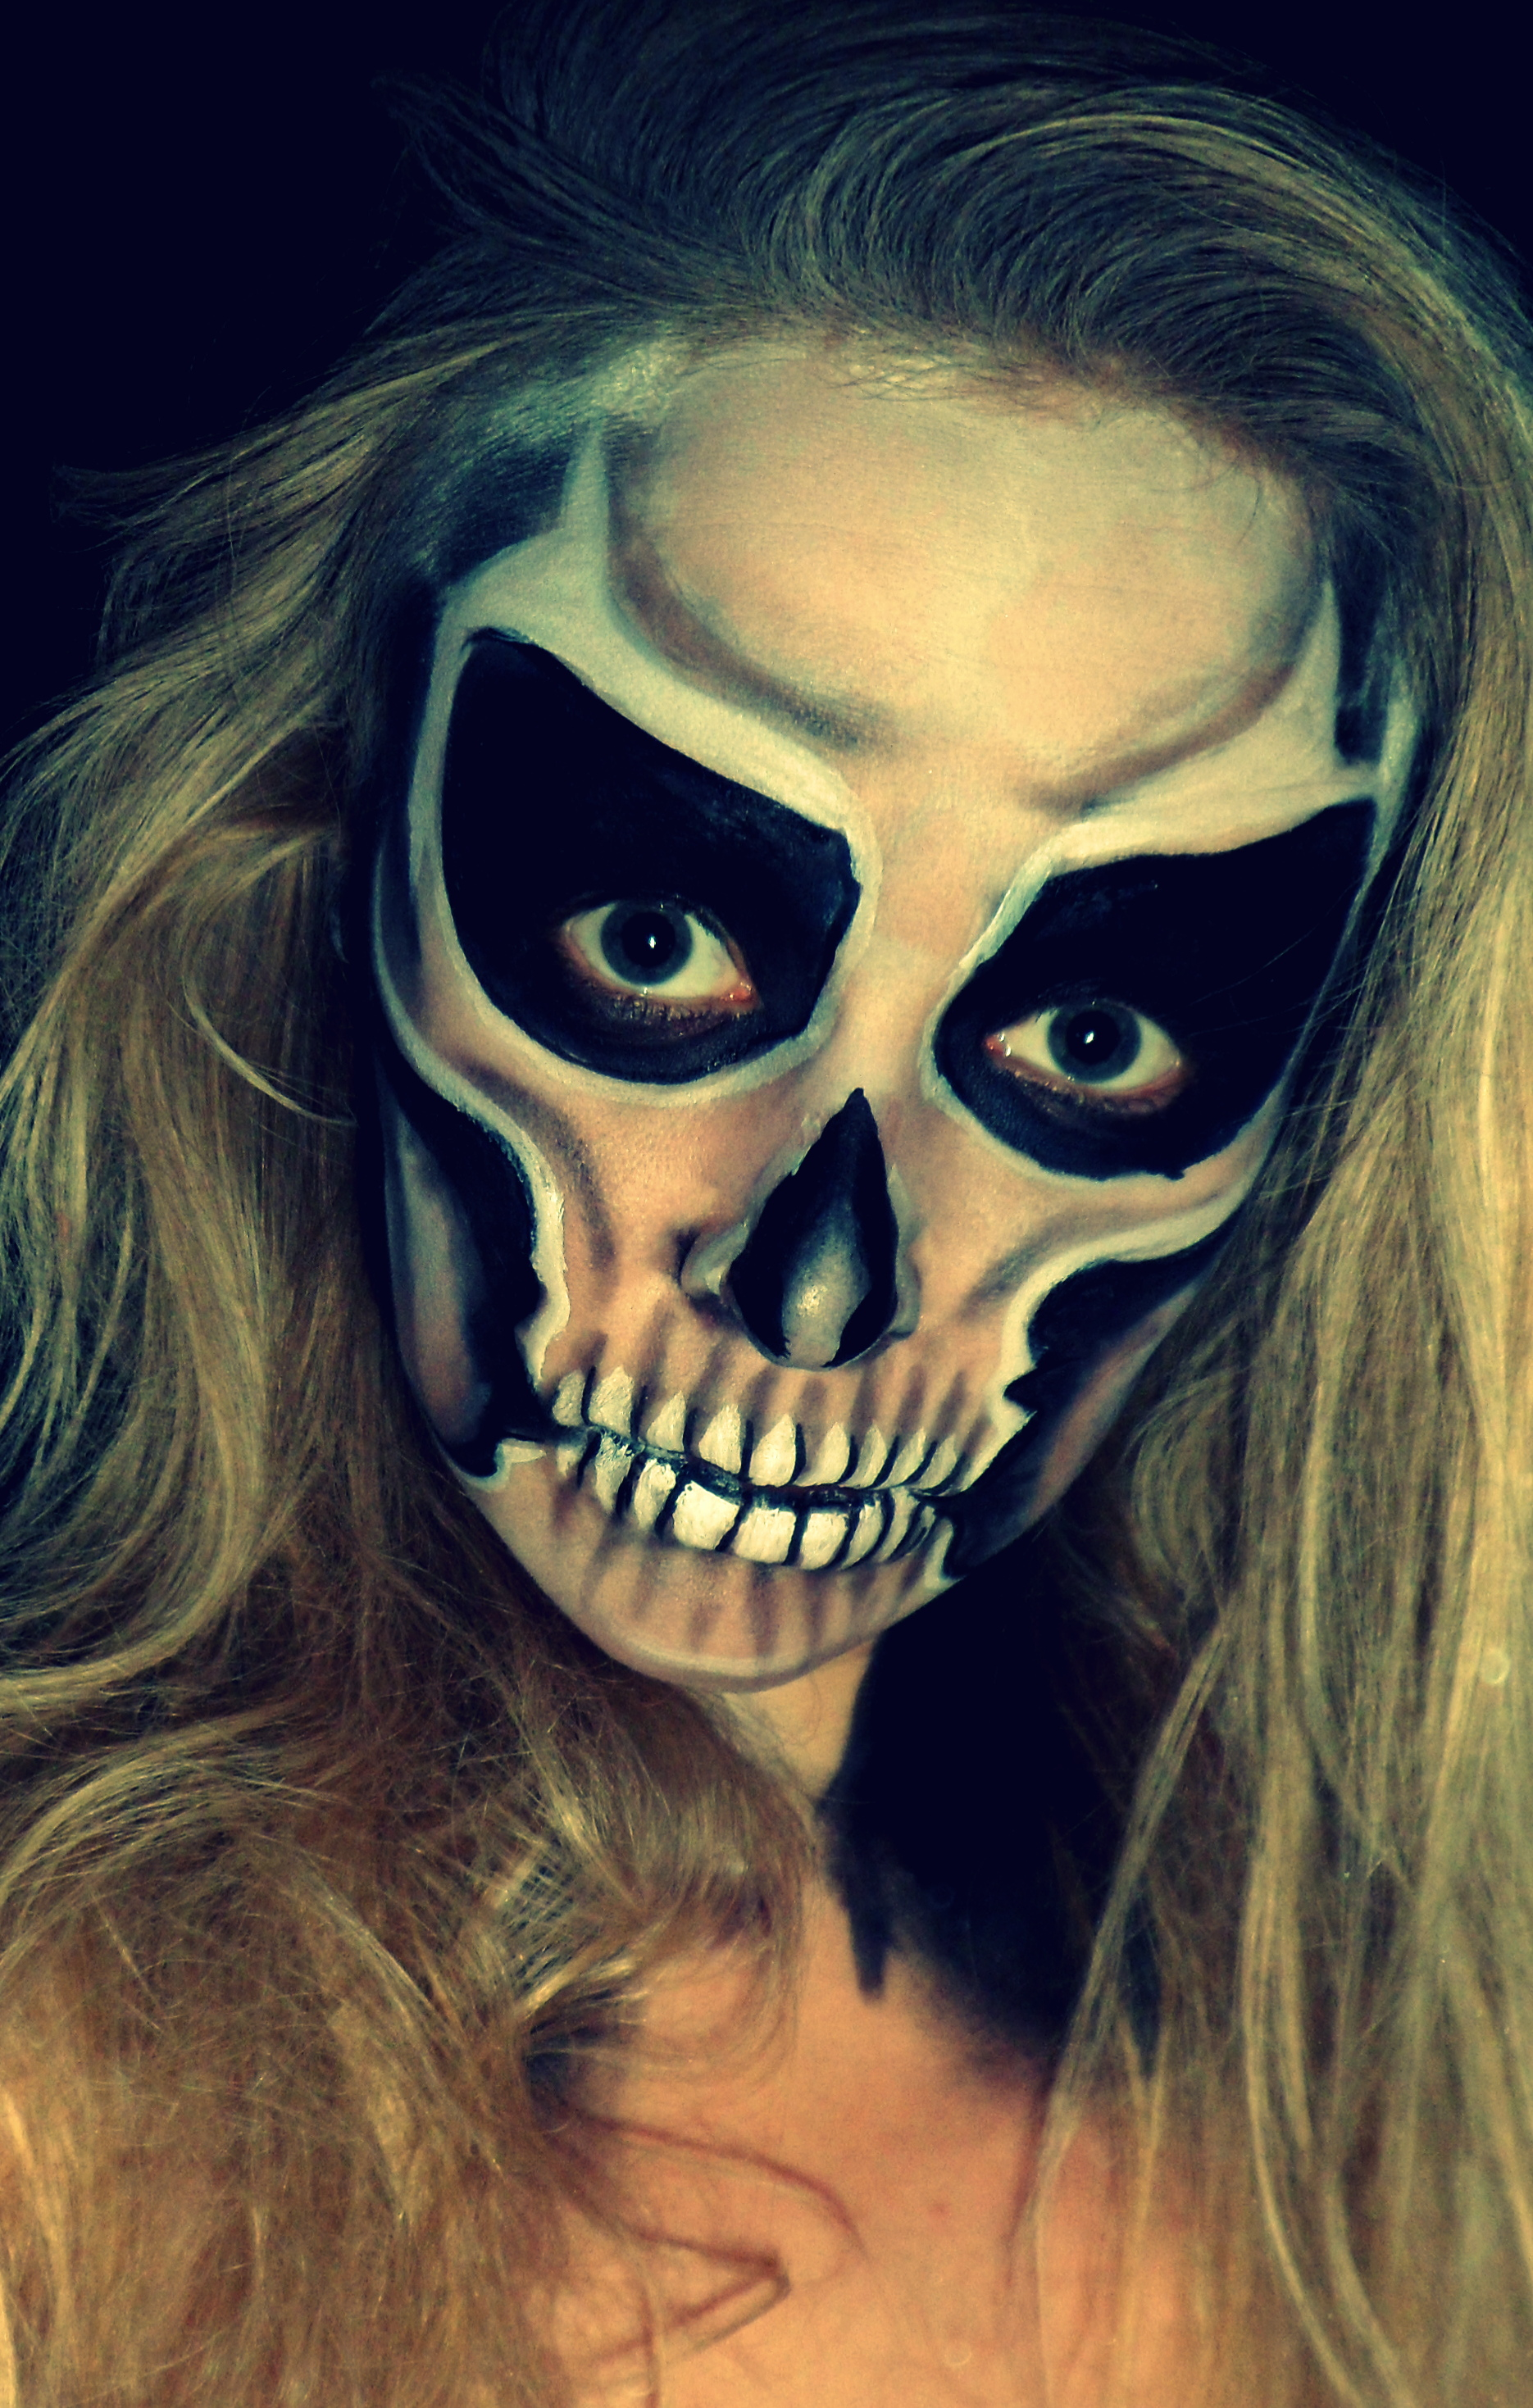 Spooky skull face paint